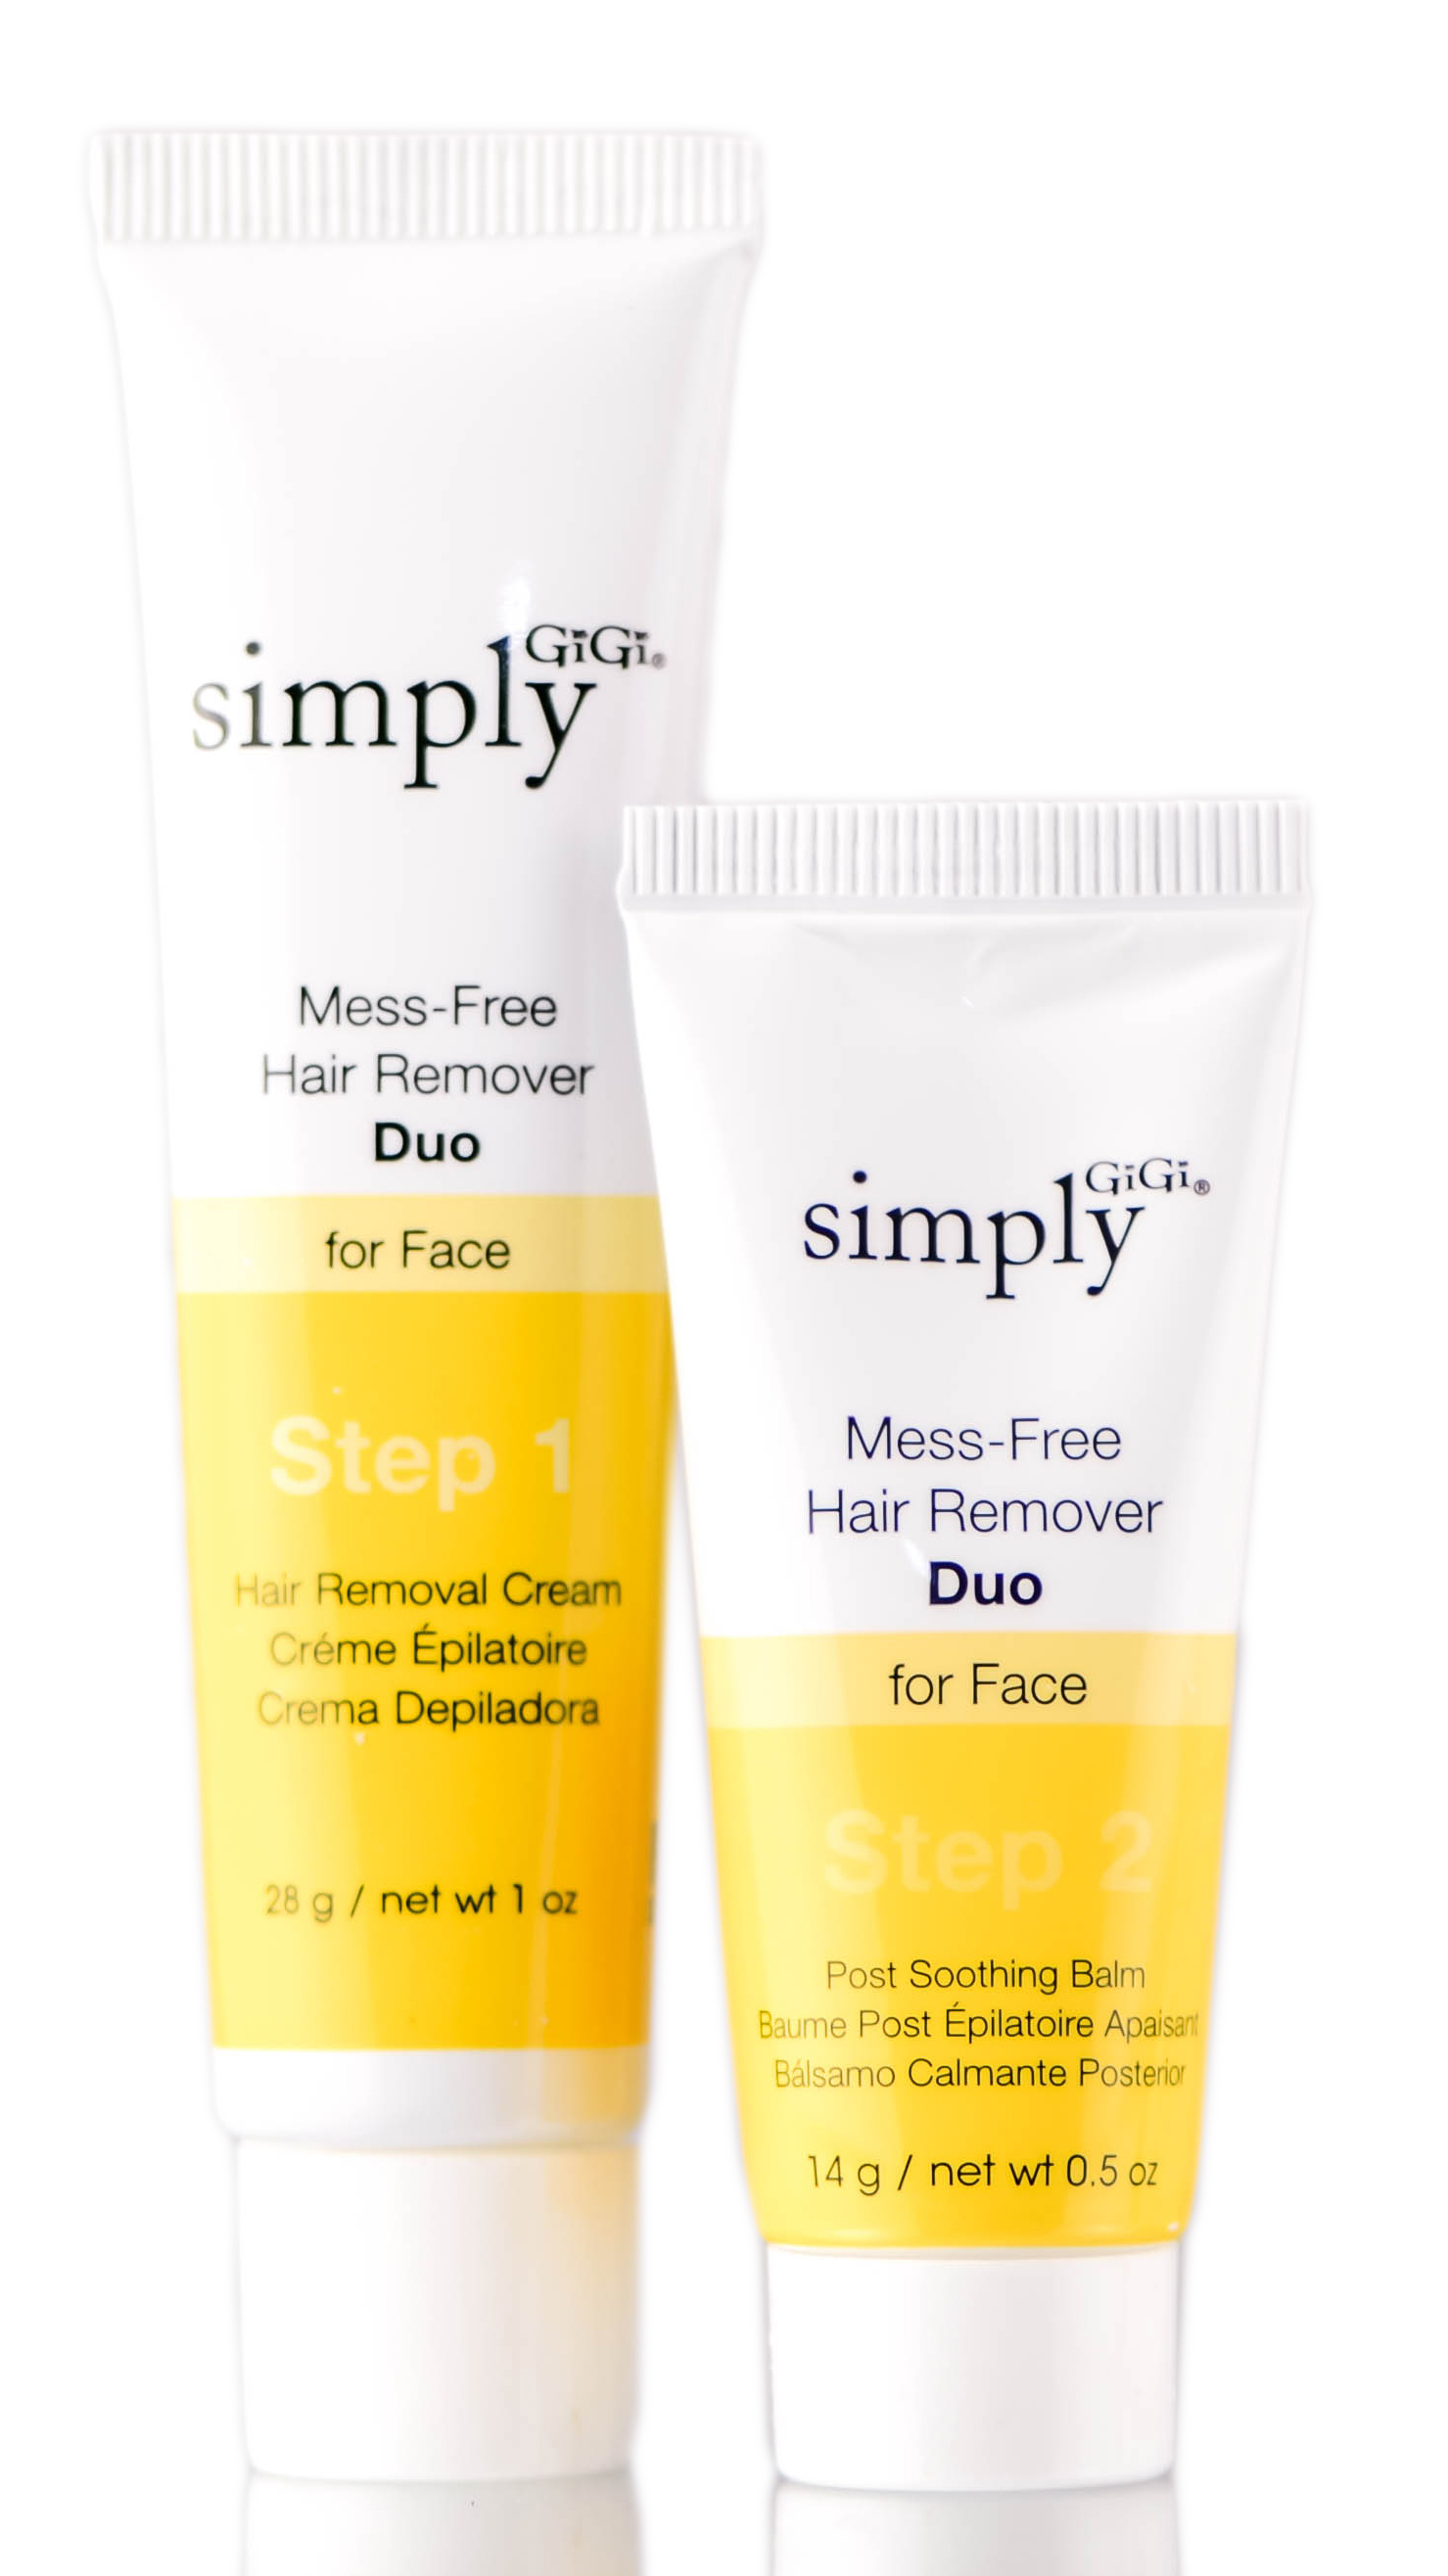 Gigi Simply Mess-Free Face Hair Remover Duo 073930030706